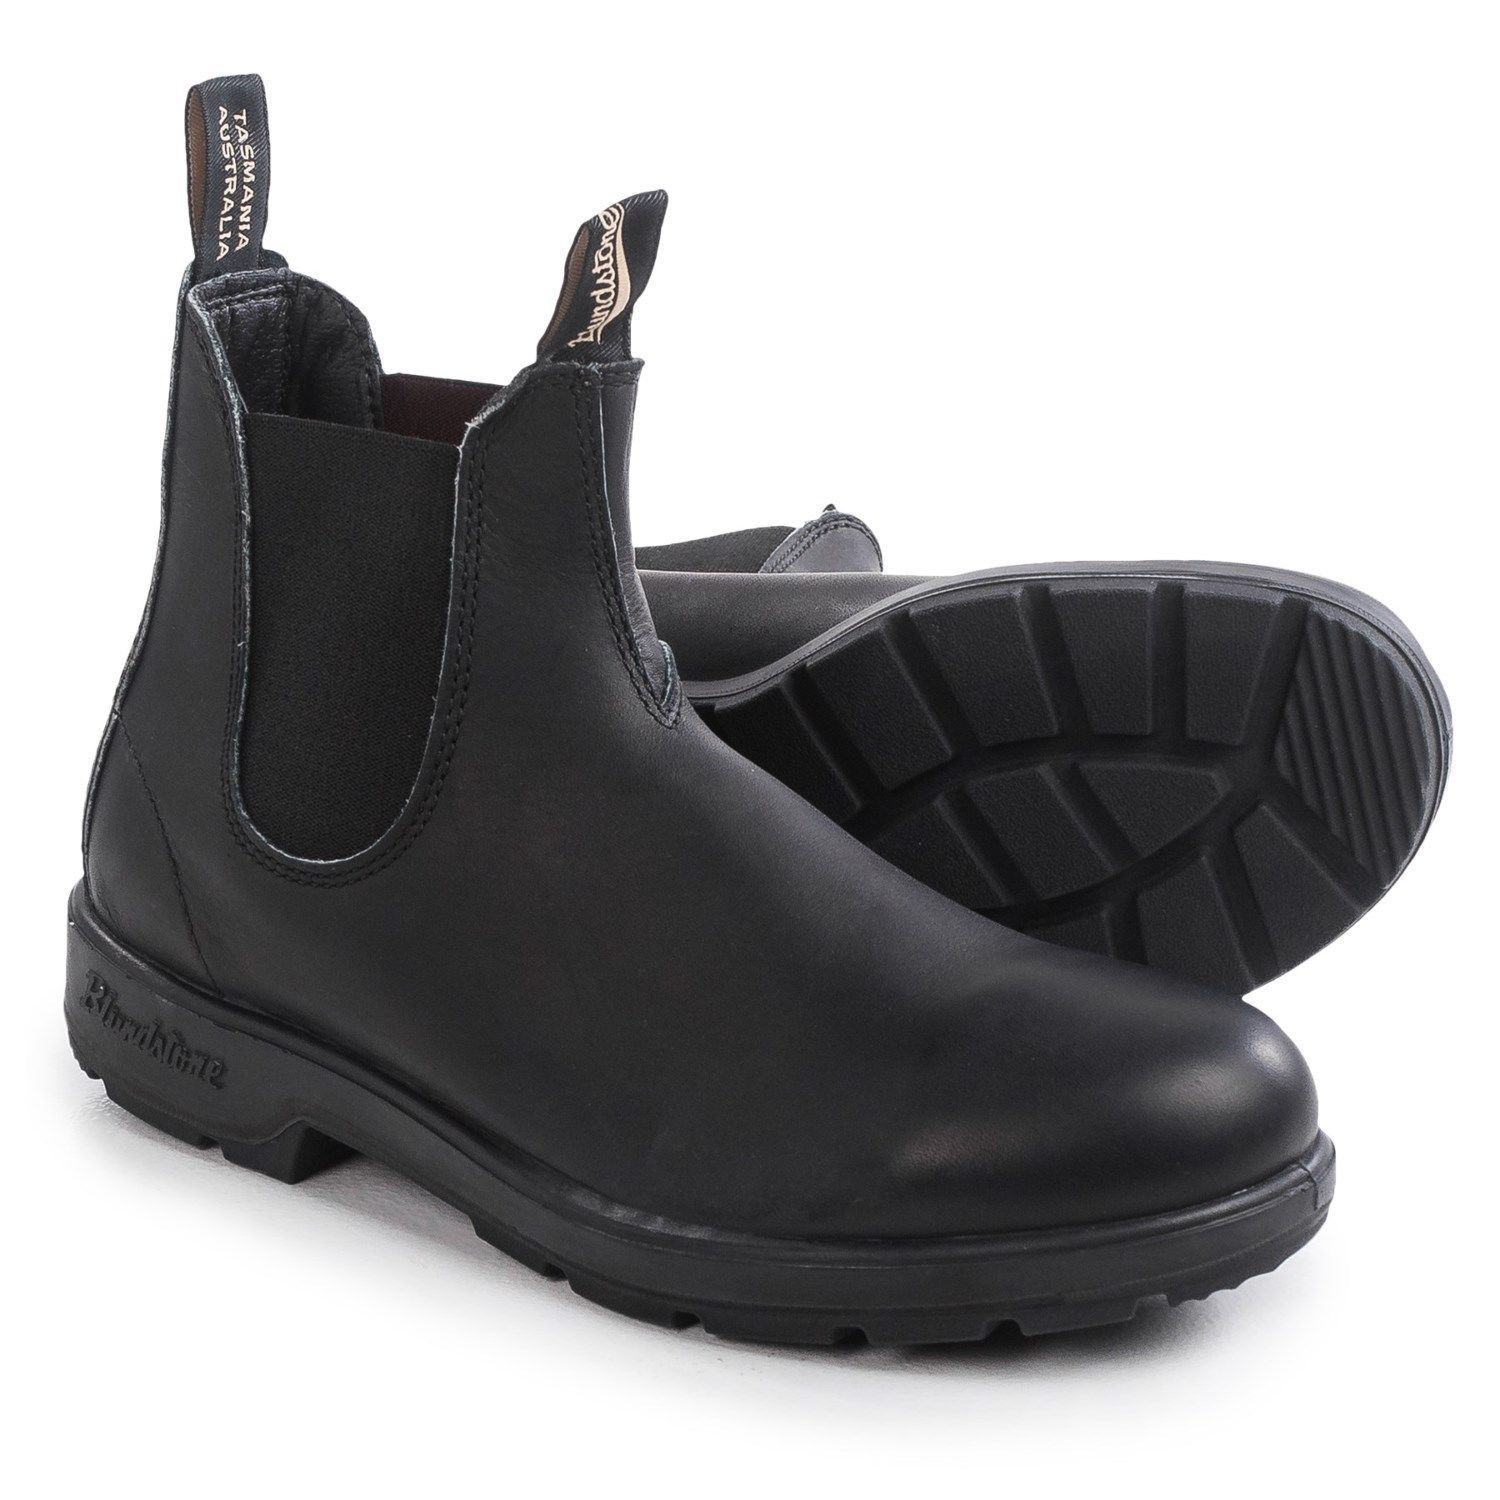 a5ffc1bf5d58 BLUNDSTONE 510 black premium leather non-safety chelsea dealer boot ...